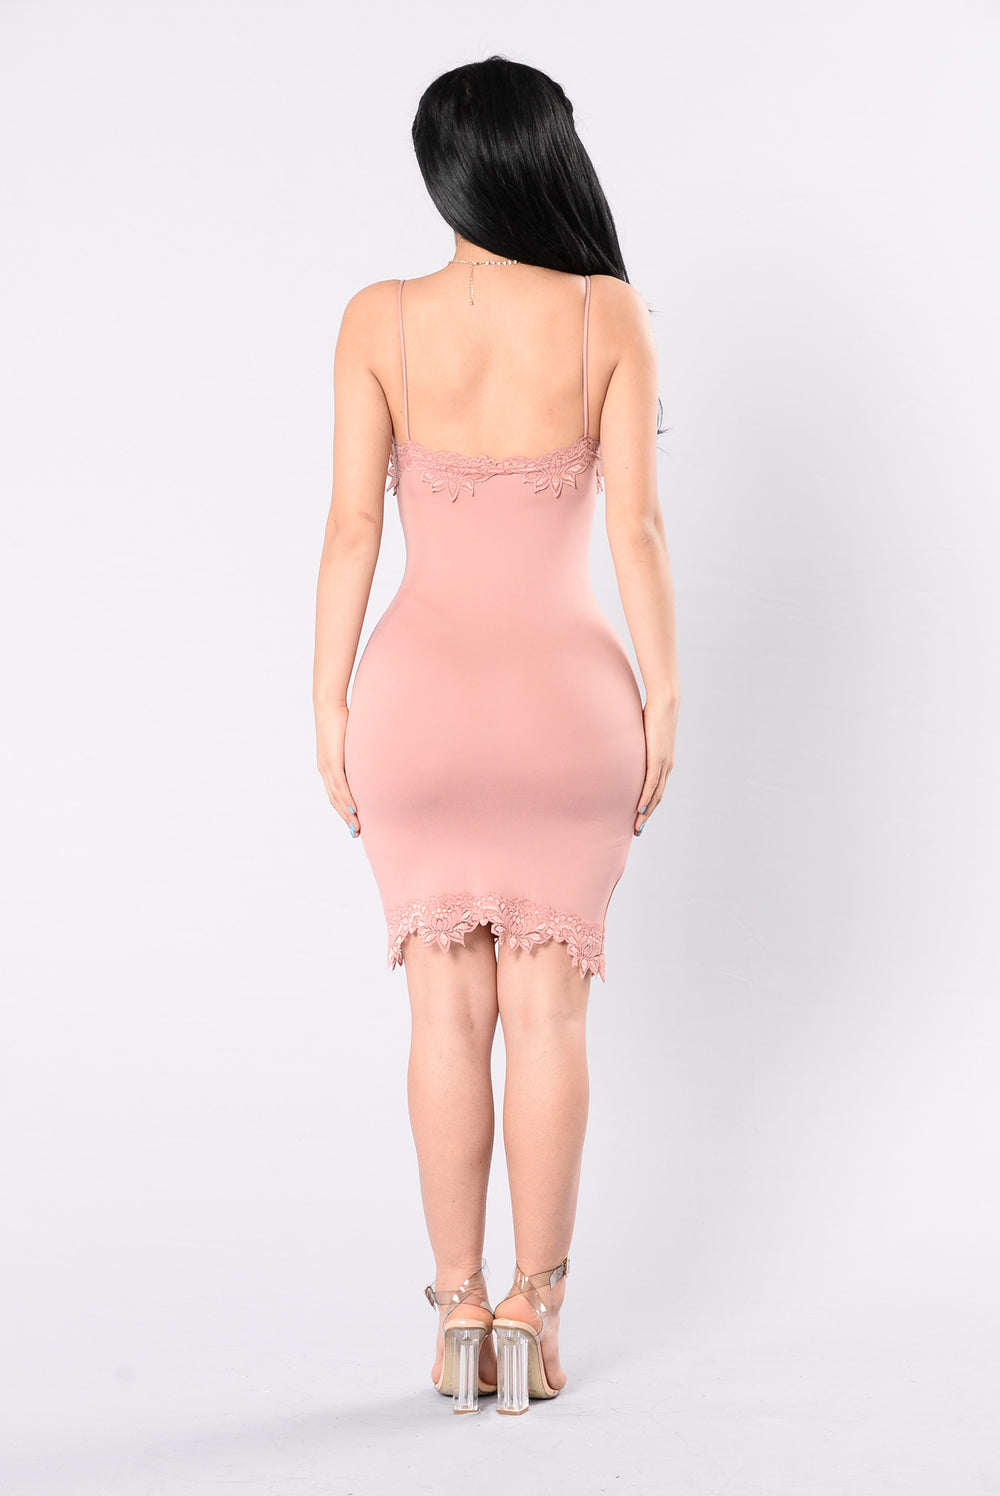 Lovin In Public Dress - Mauve